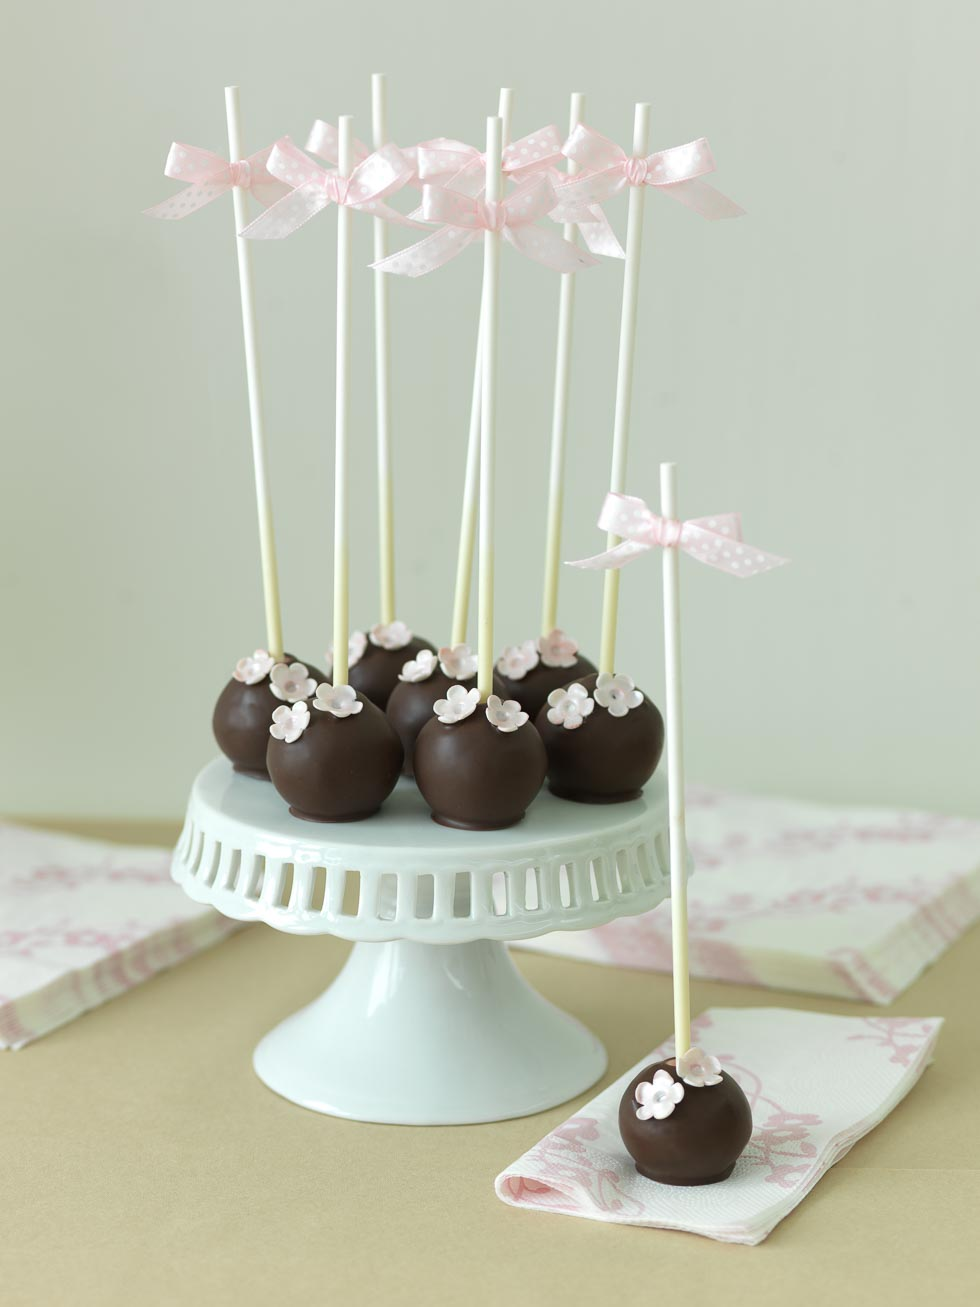 cake pops anleitung originalrezepte mit geling garantie. Black Bedroom Furniture Sets. Home Design Ideas